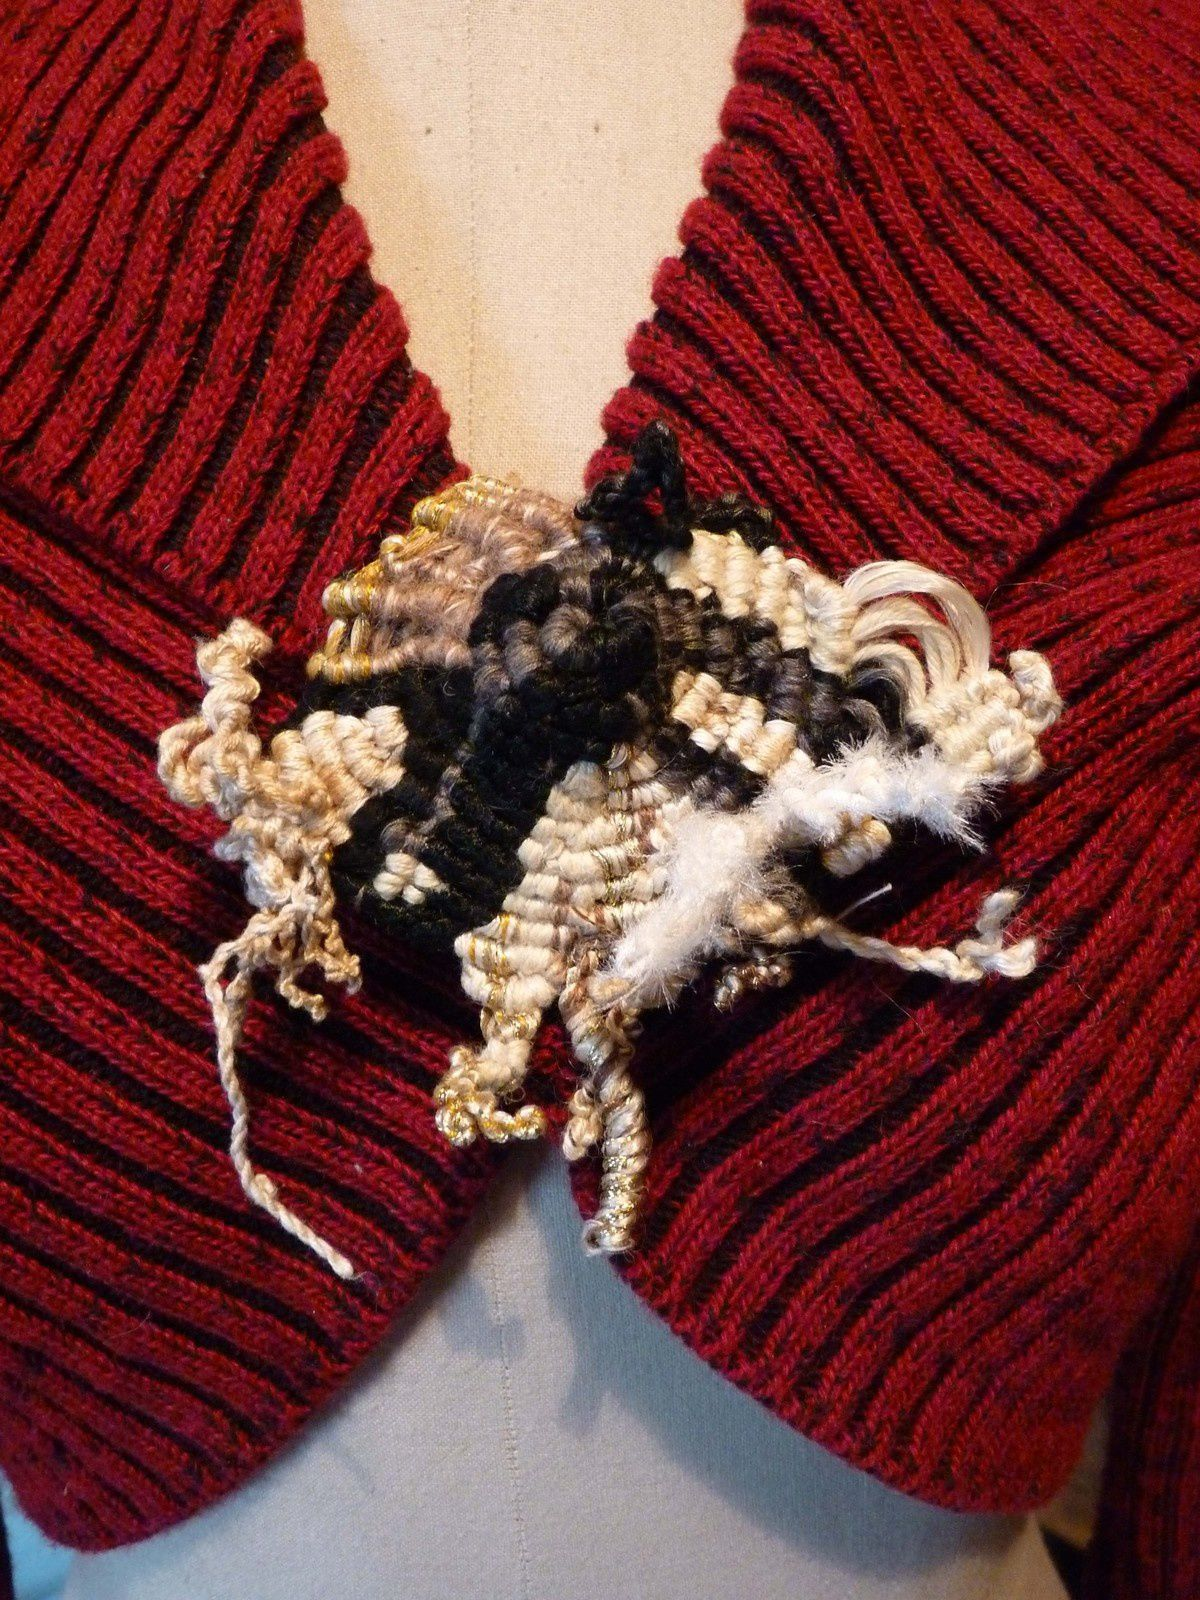 macramé photo J.Vétillard